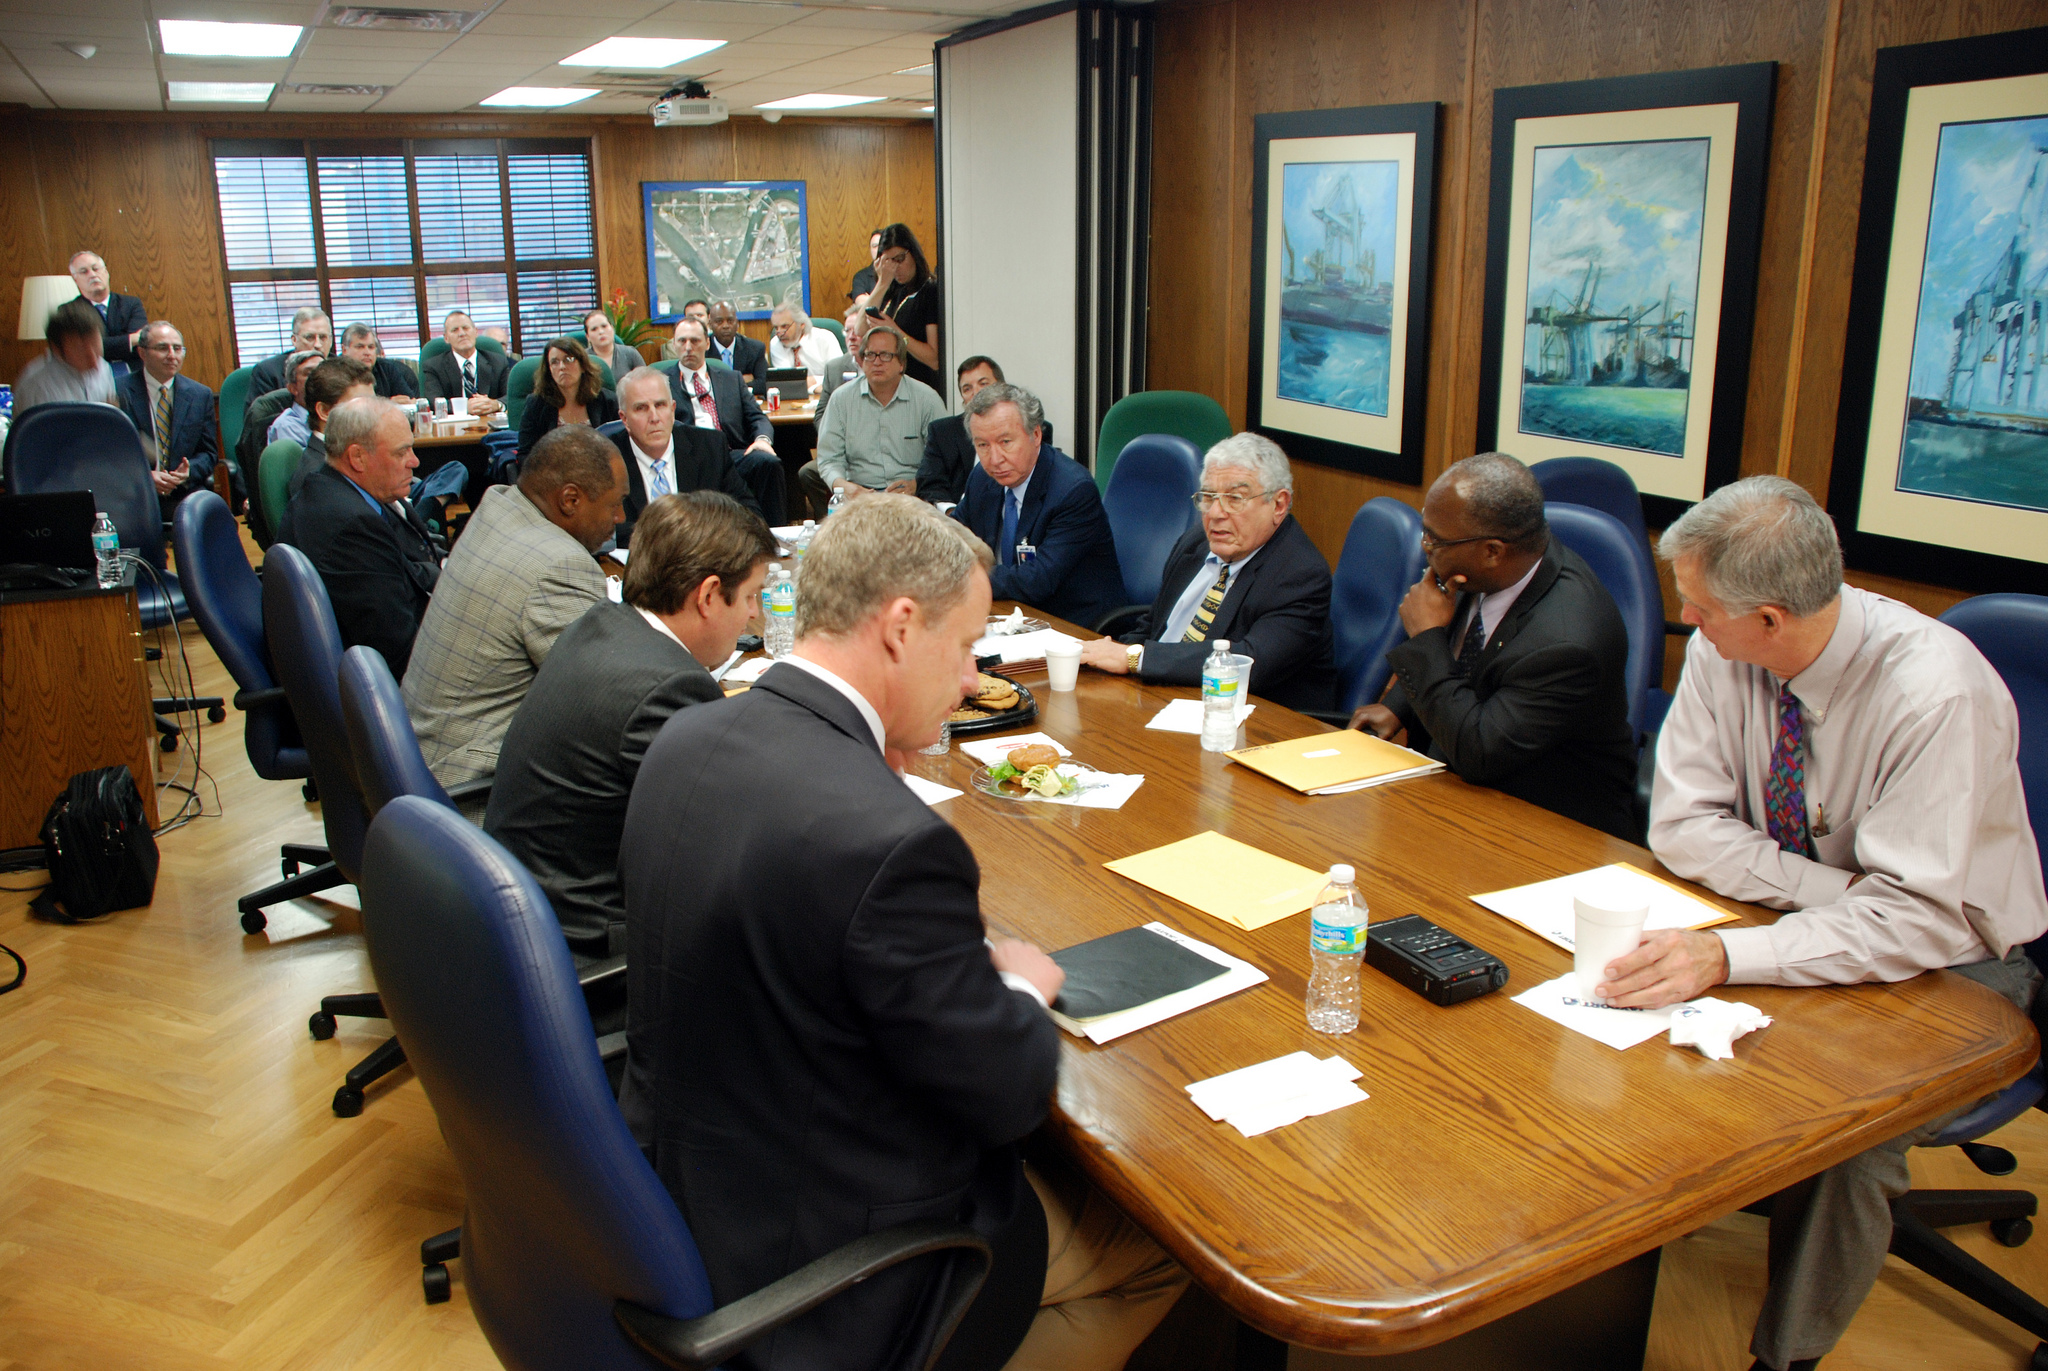 The report emphasizes that corporate directors should not limit their engagement in strategy development to annual discussions with management or crisis situations. (image: JAXPORT / flickr)